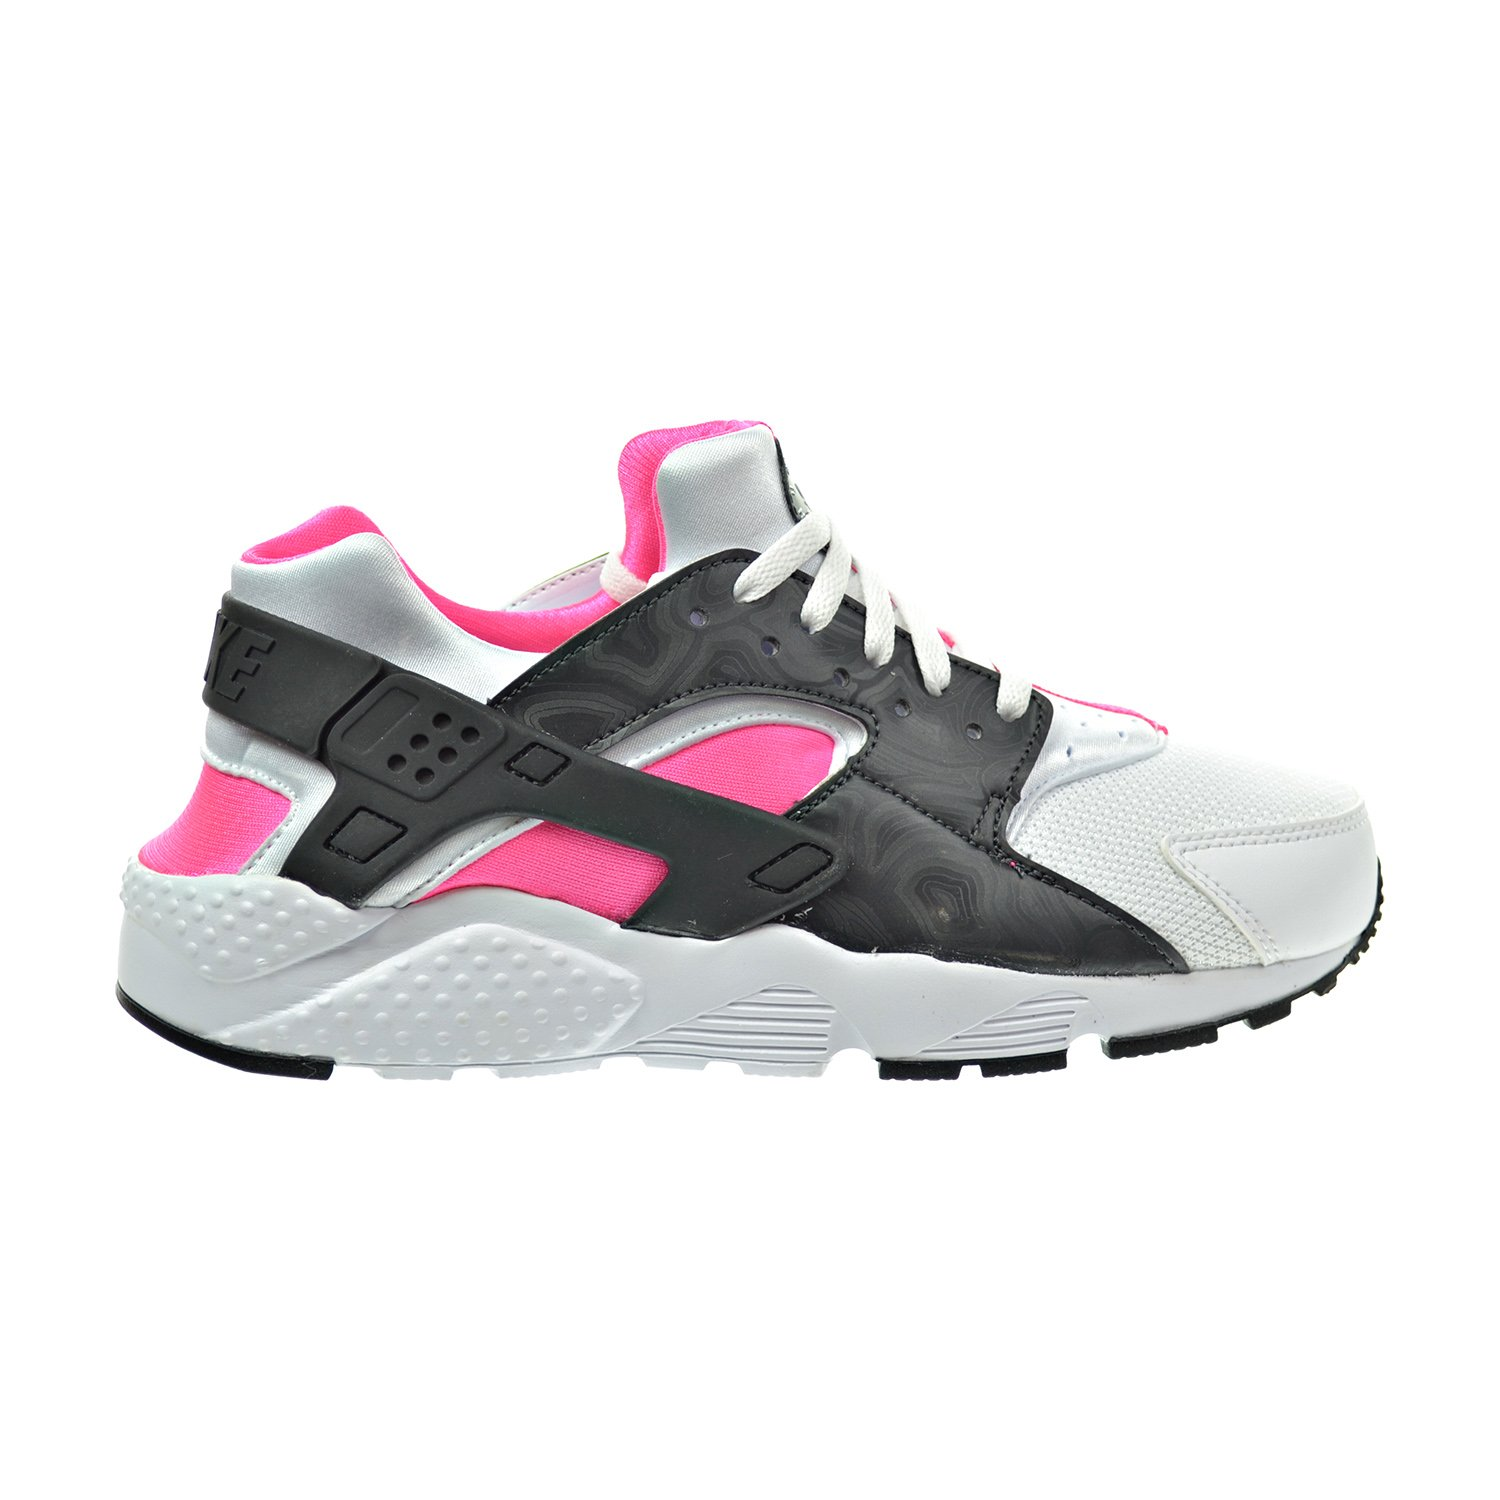 Nike Huarache Run White/Hyper Pink/Black/Anthracite - Nike Running Shoes Fast Delivery - NIKE. JUST